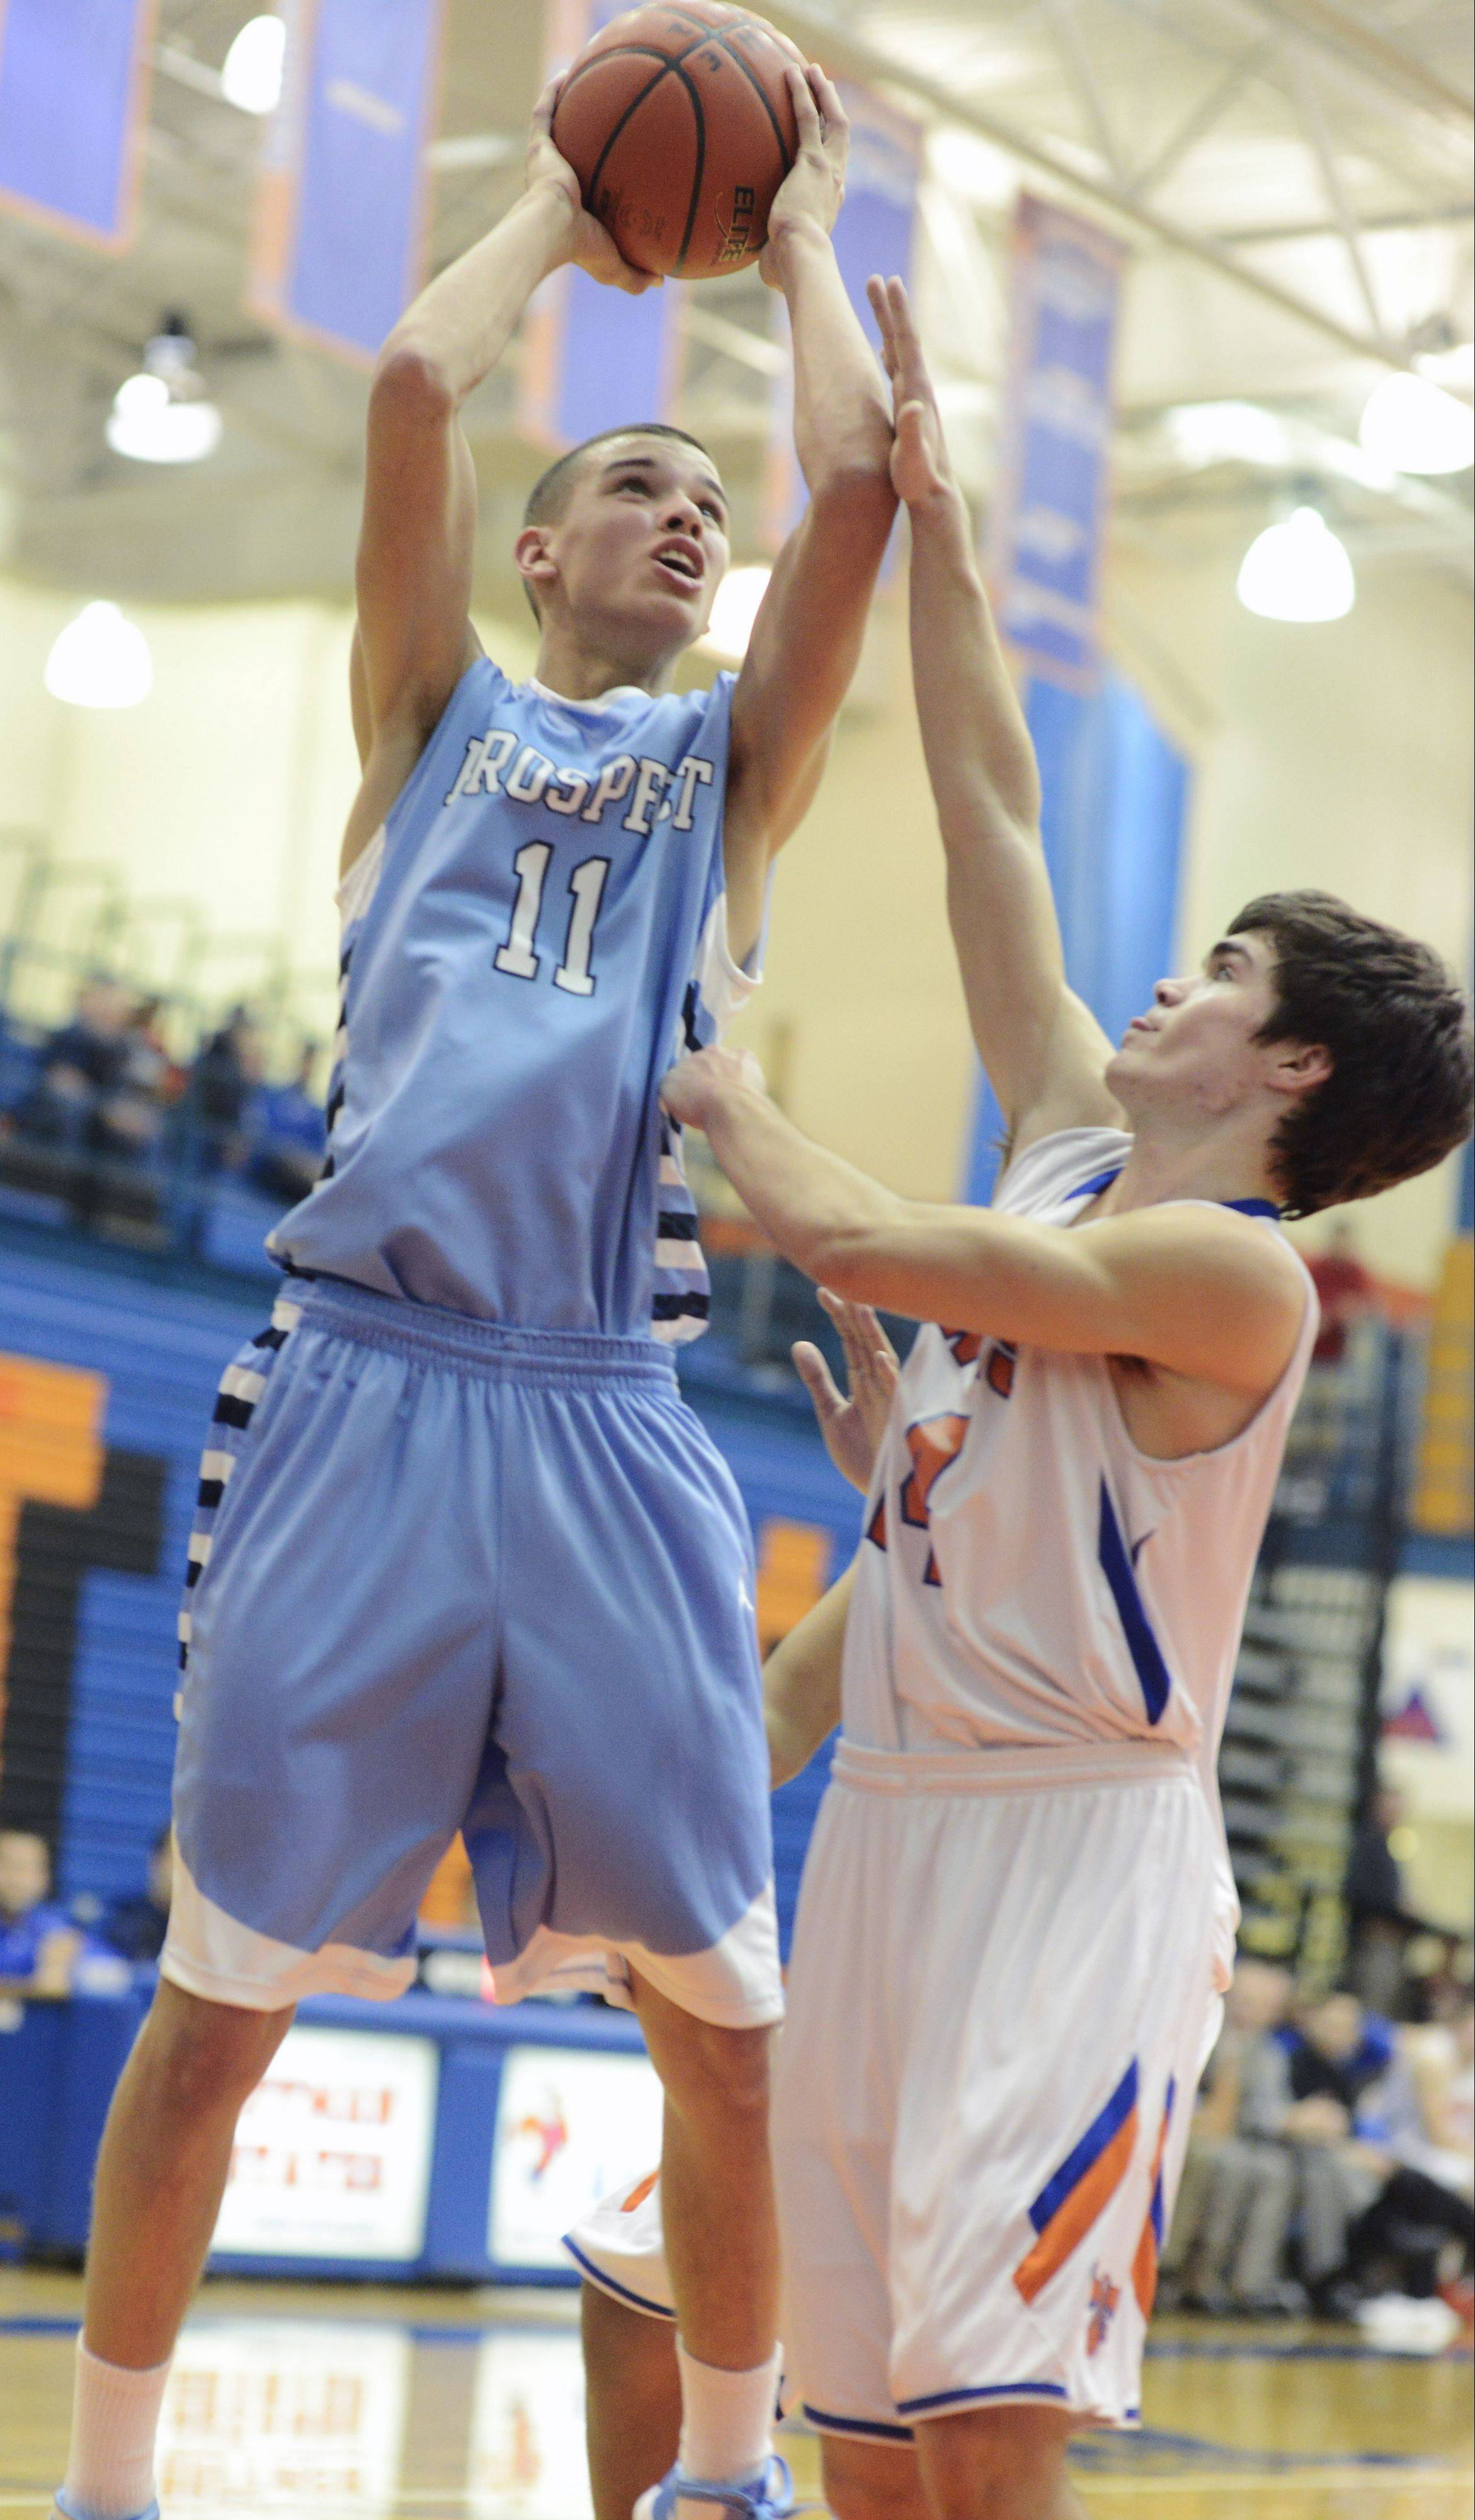 Prospect's Devin O'Hara takes a shot while being defended by Hoffman Estates' Trevor Pye during Tuesday's game.